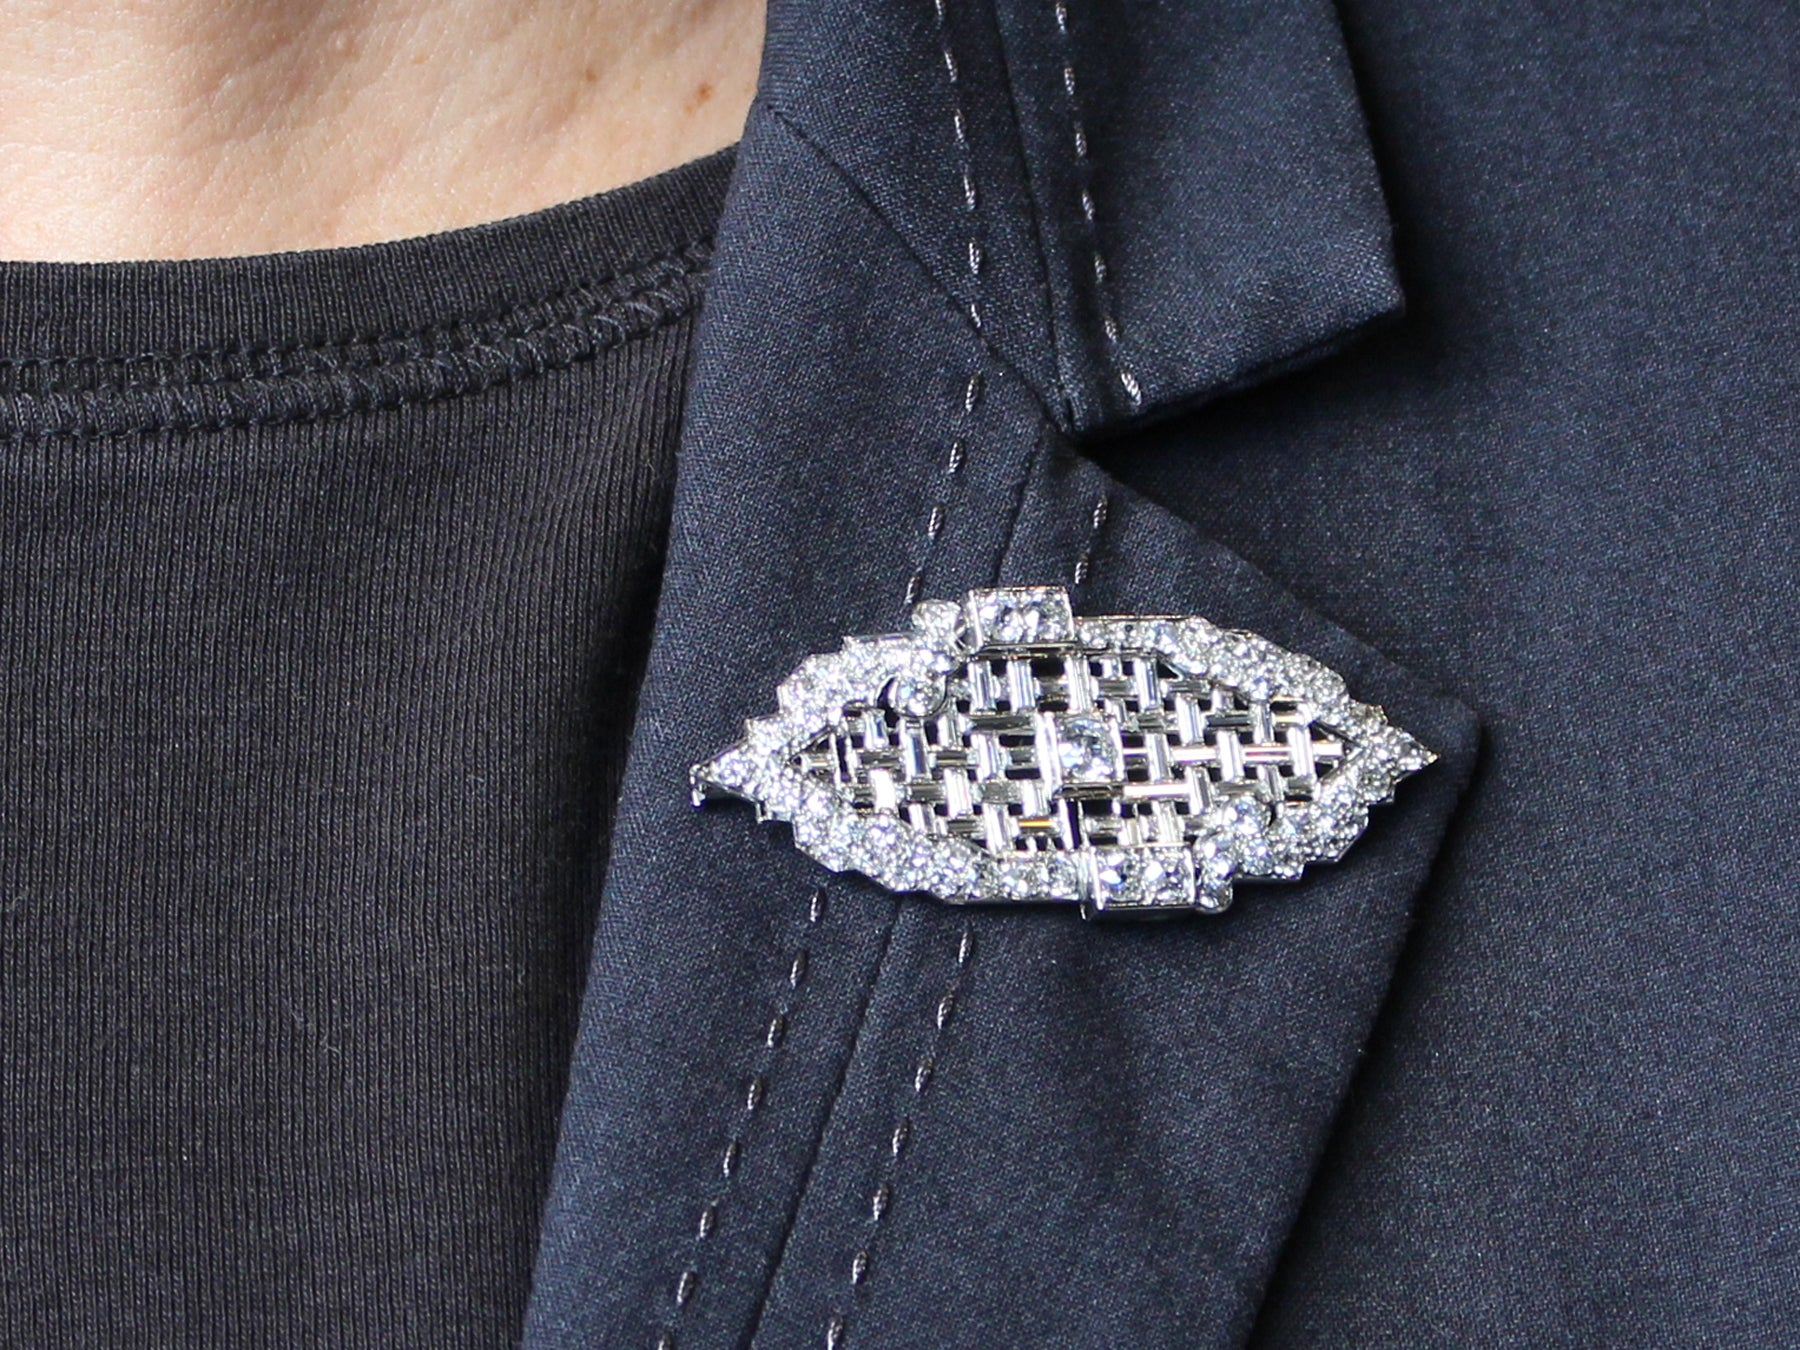 crystal views with edges de collar brooch medal lis center fleur more